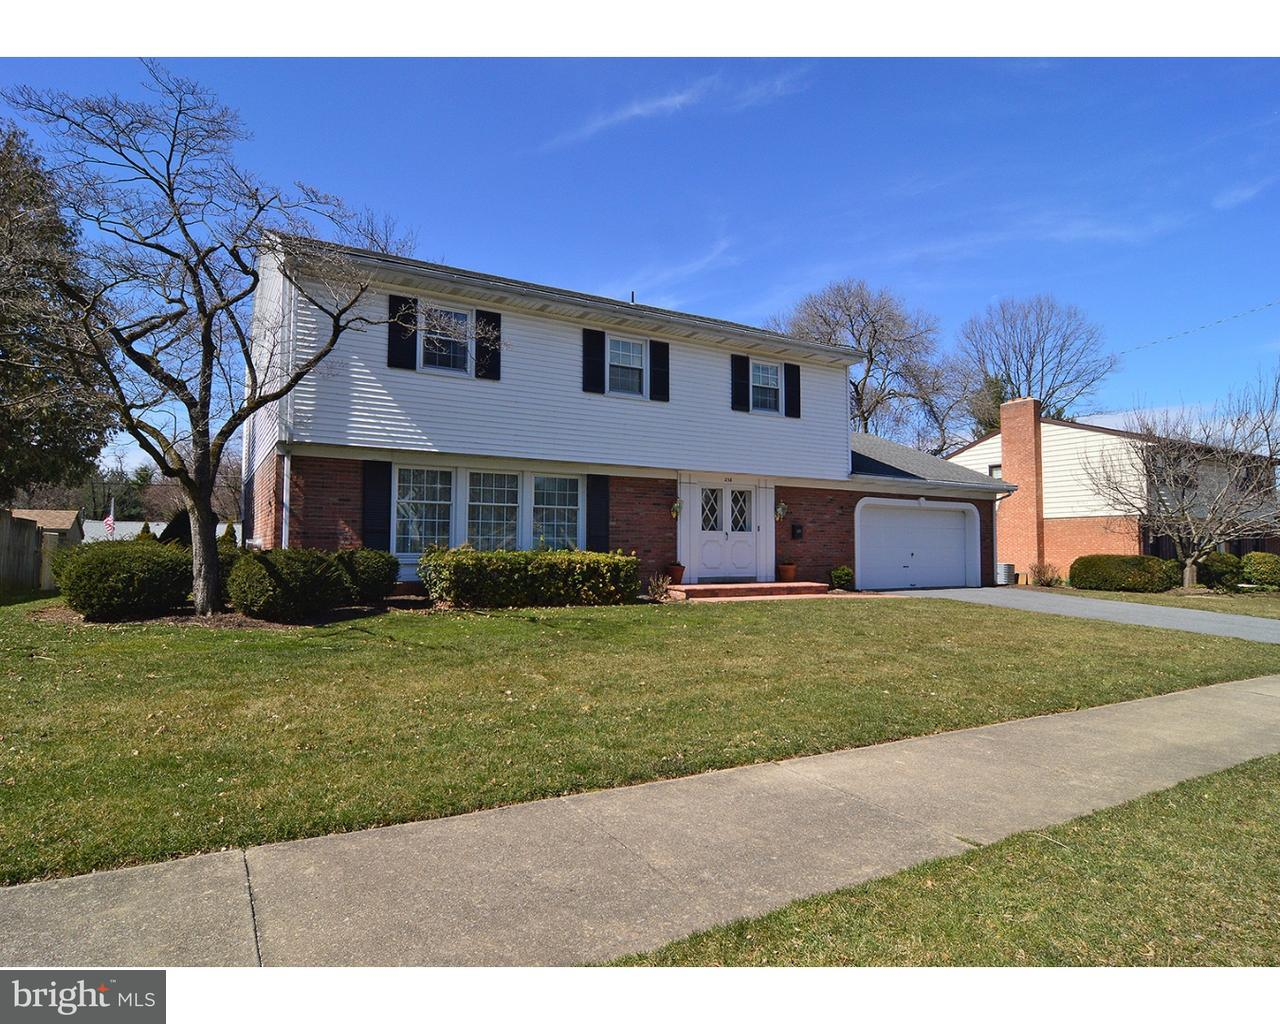 256 ELIZABETH DR, READING - Listed at $255,000, READING